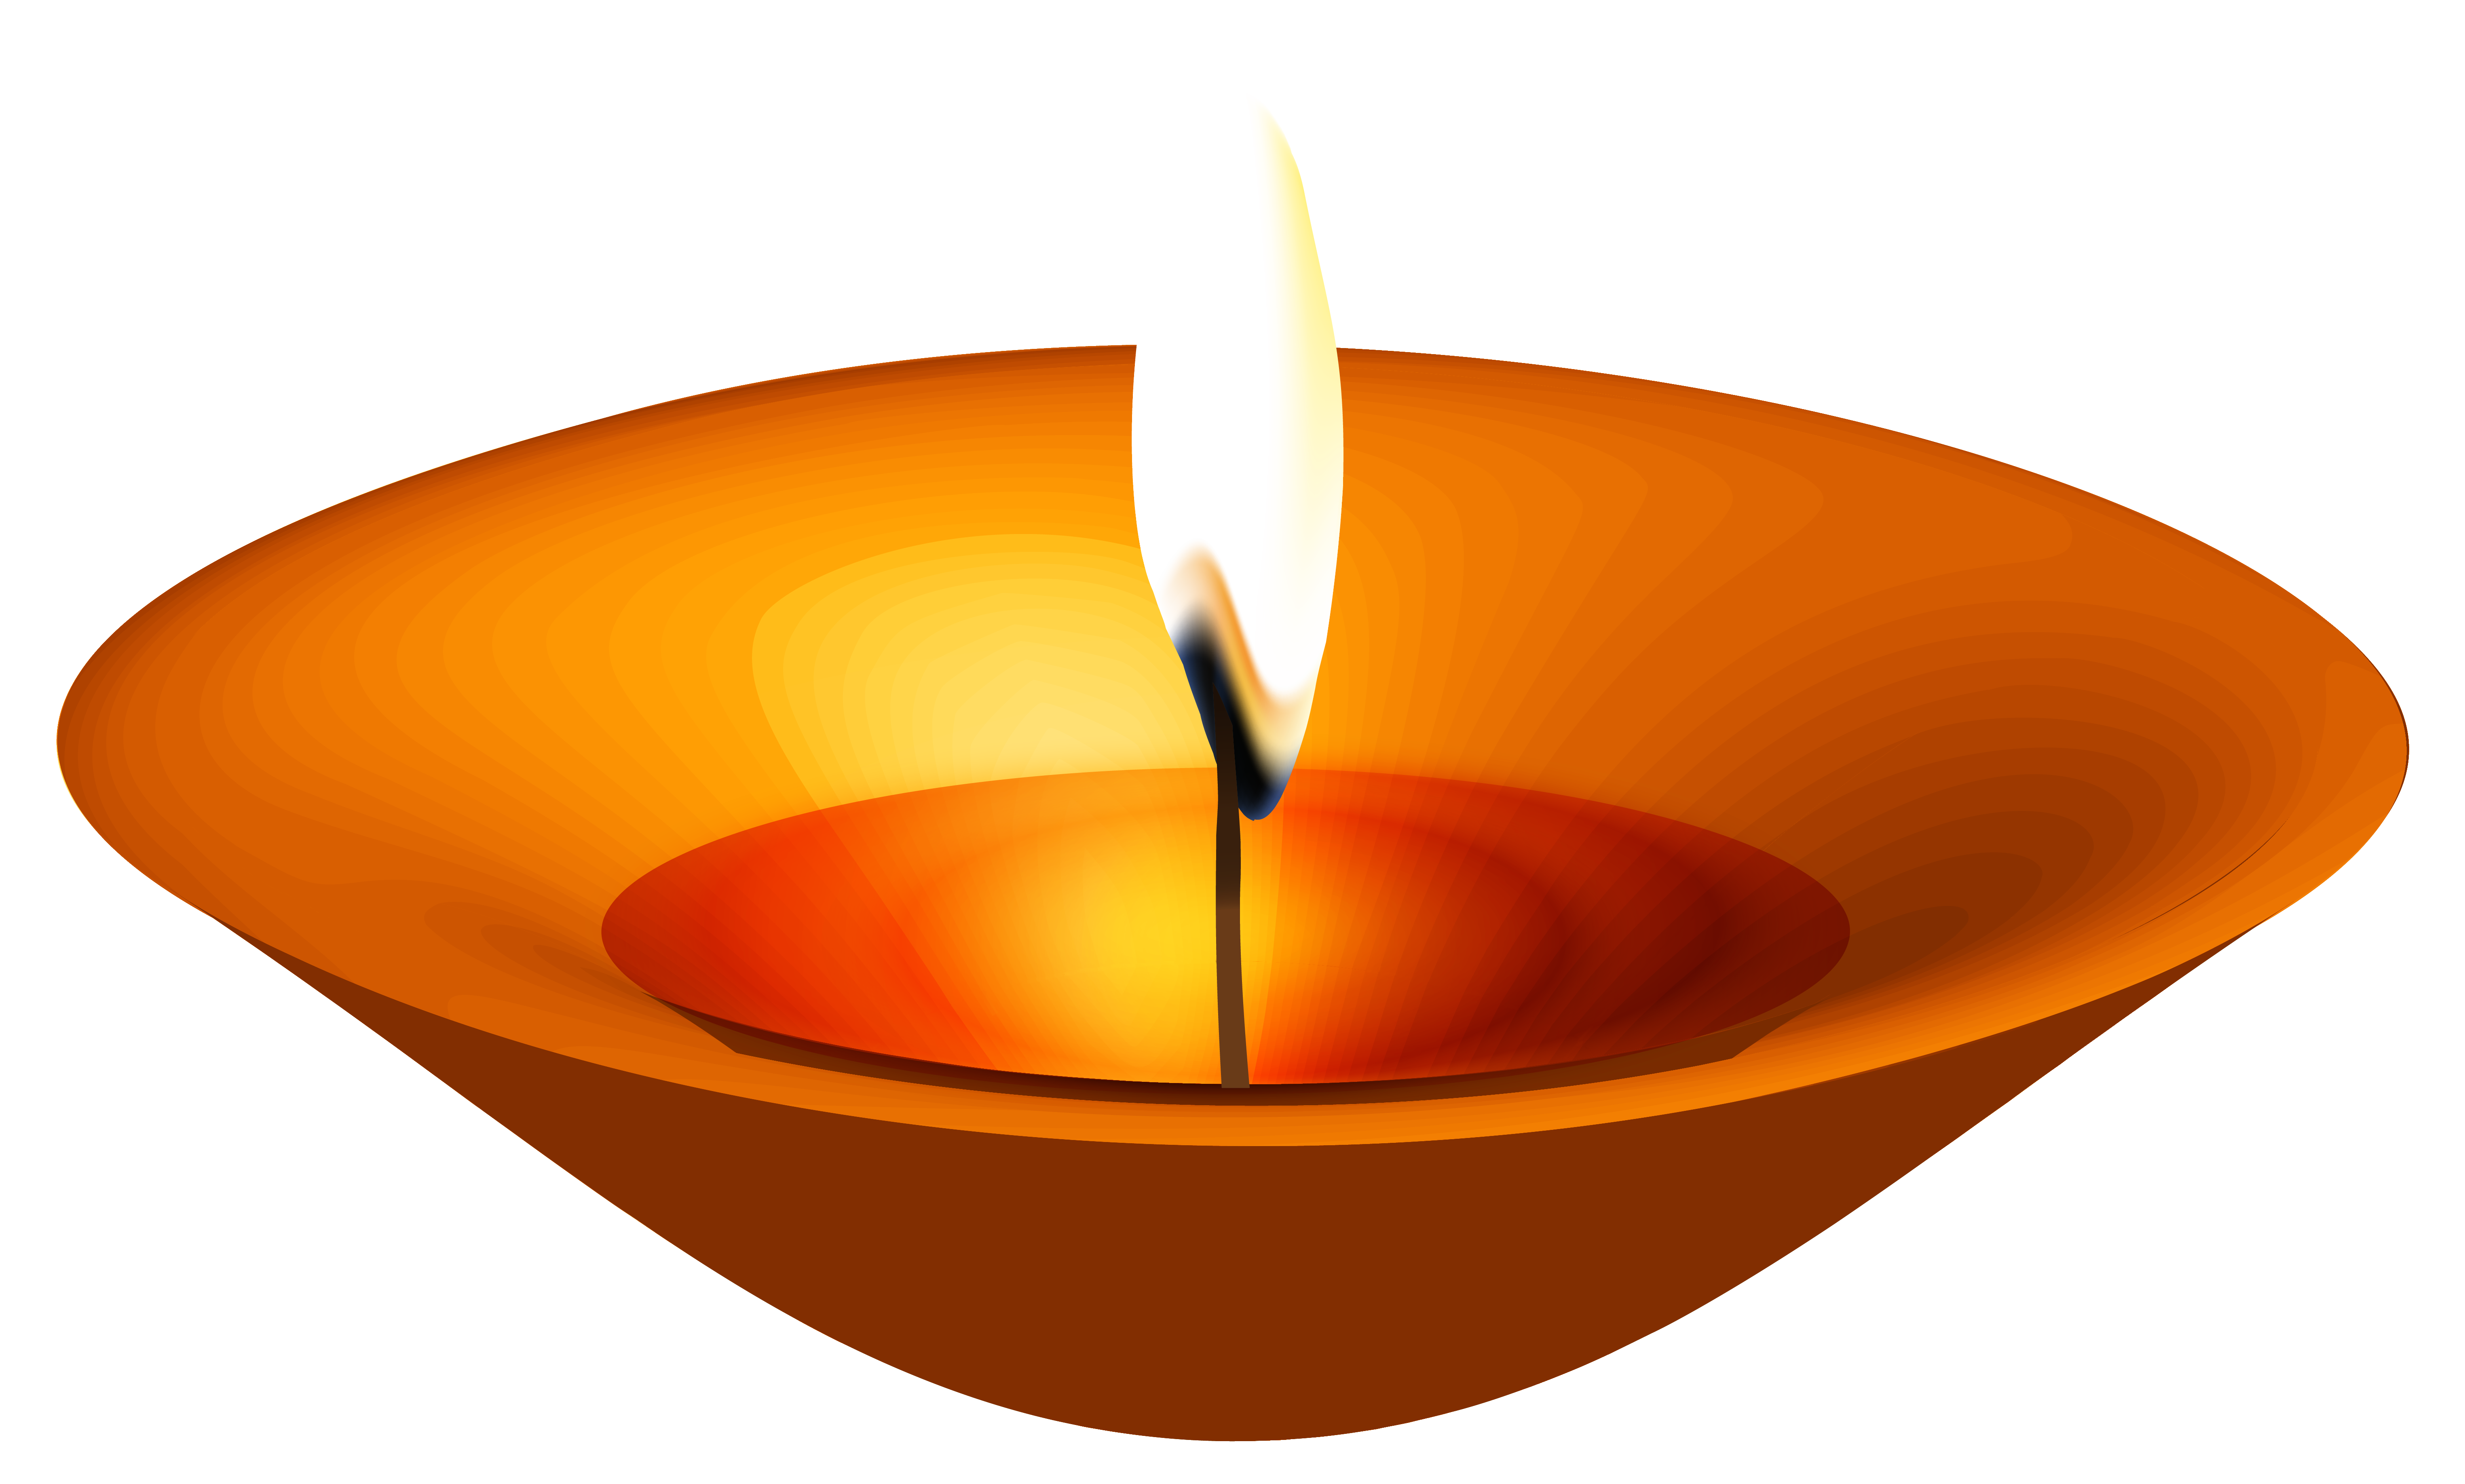 Green clipart diwali. Candle png image gallery